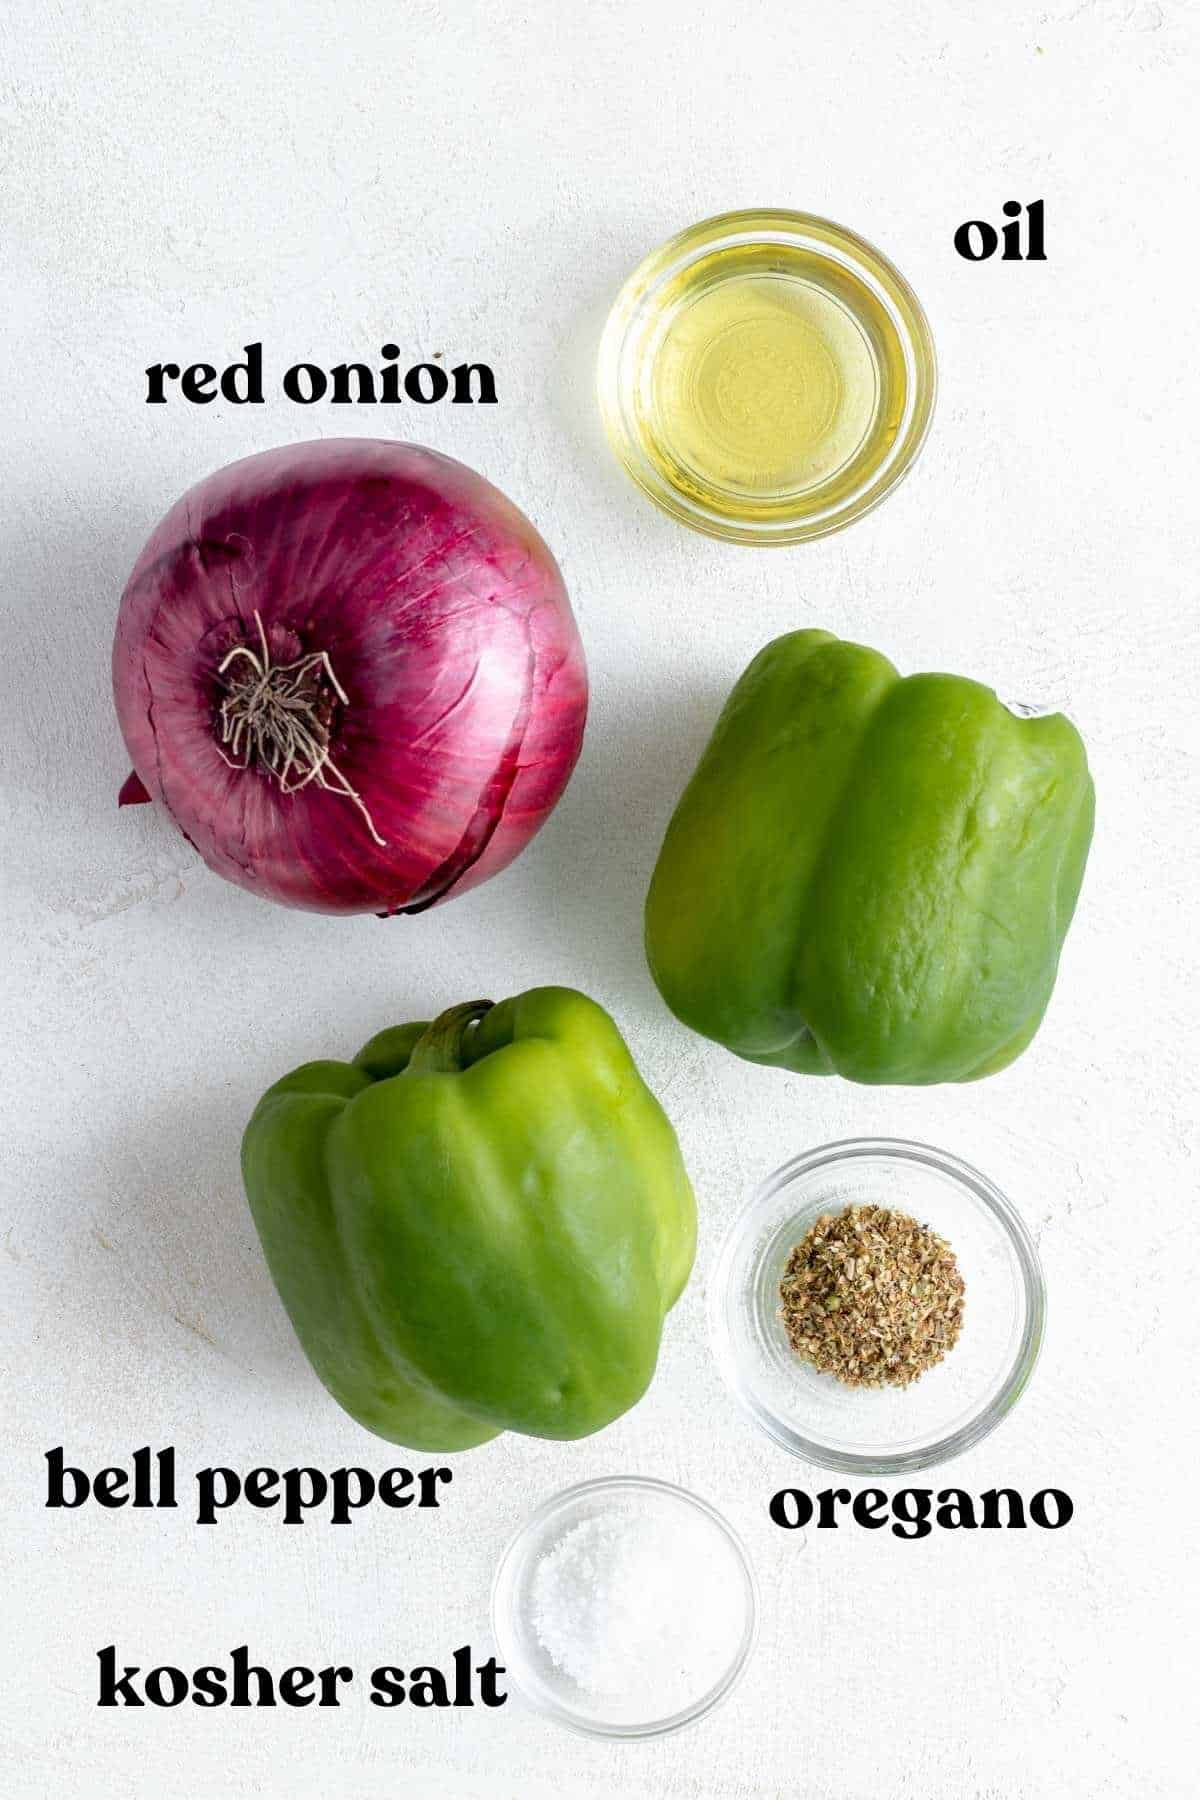 Red onion, oil, bell peppers, oregano and salt on white background.